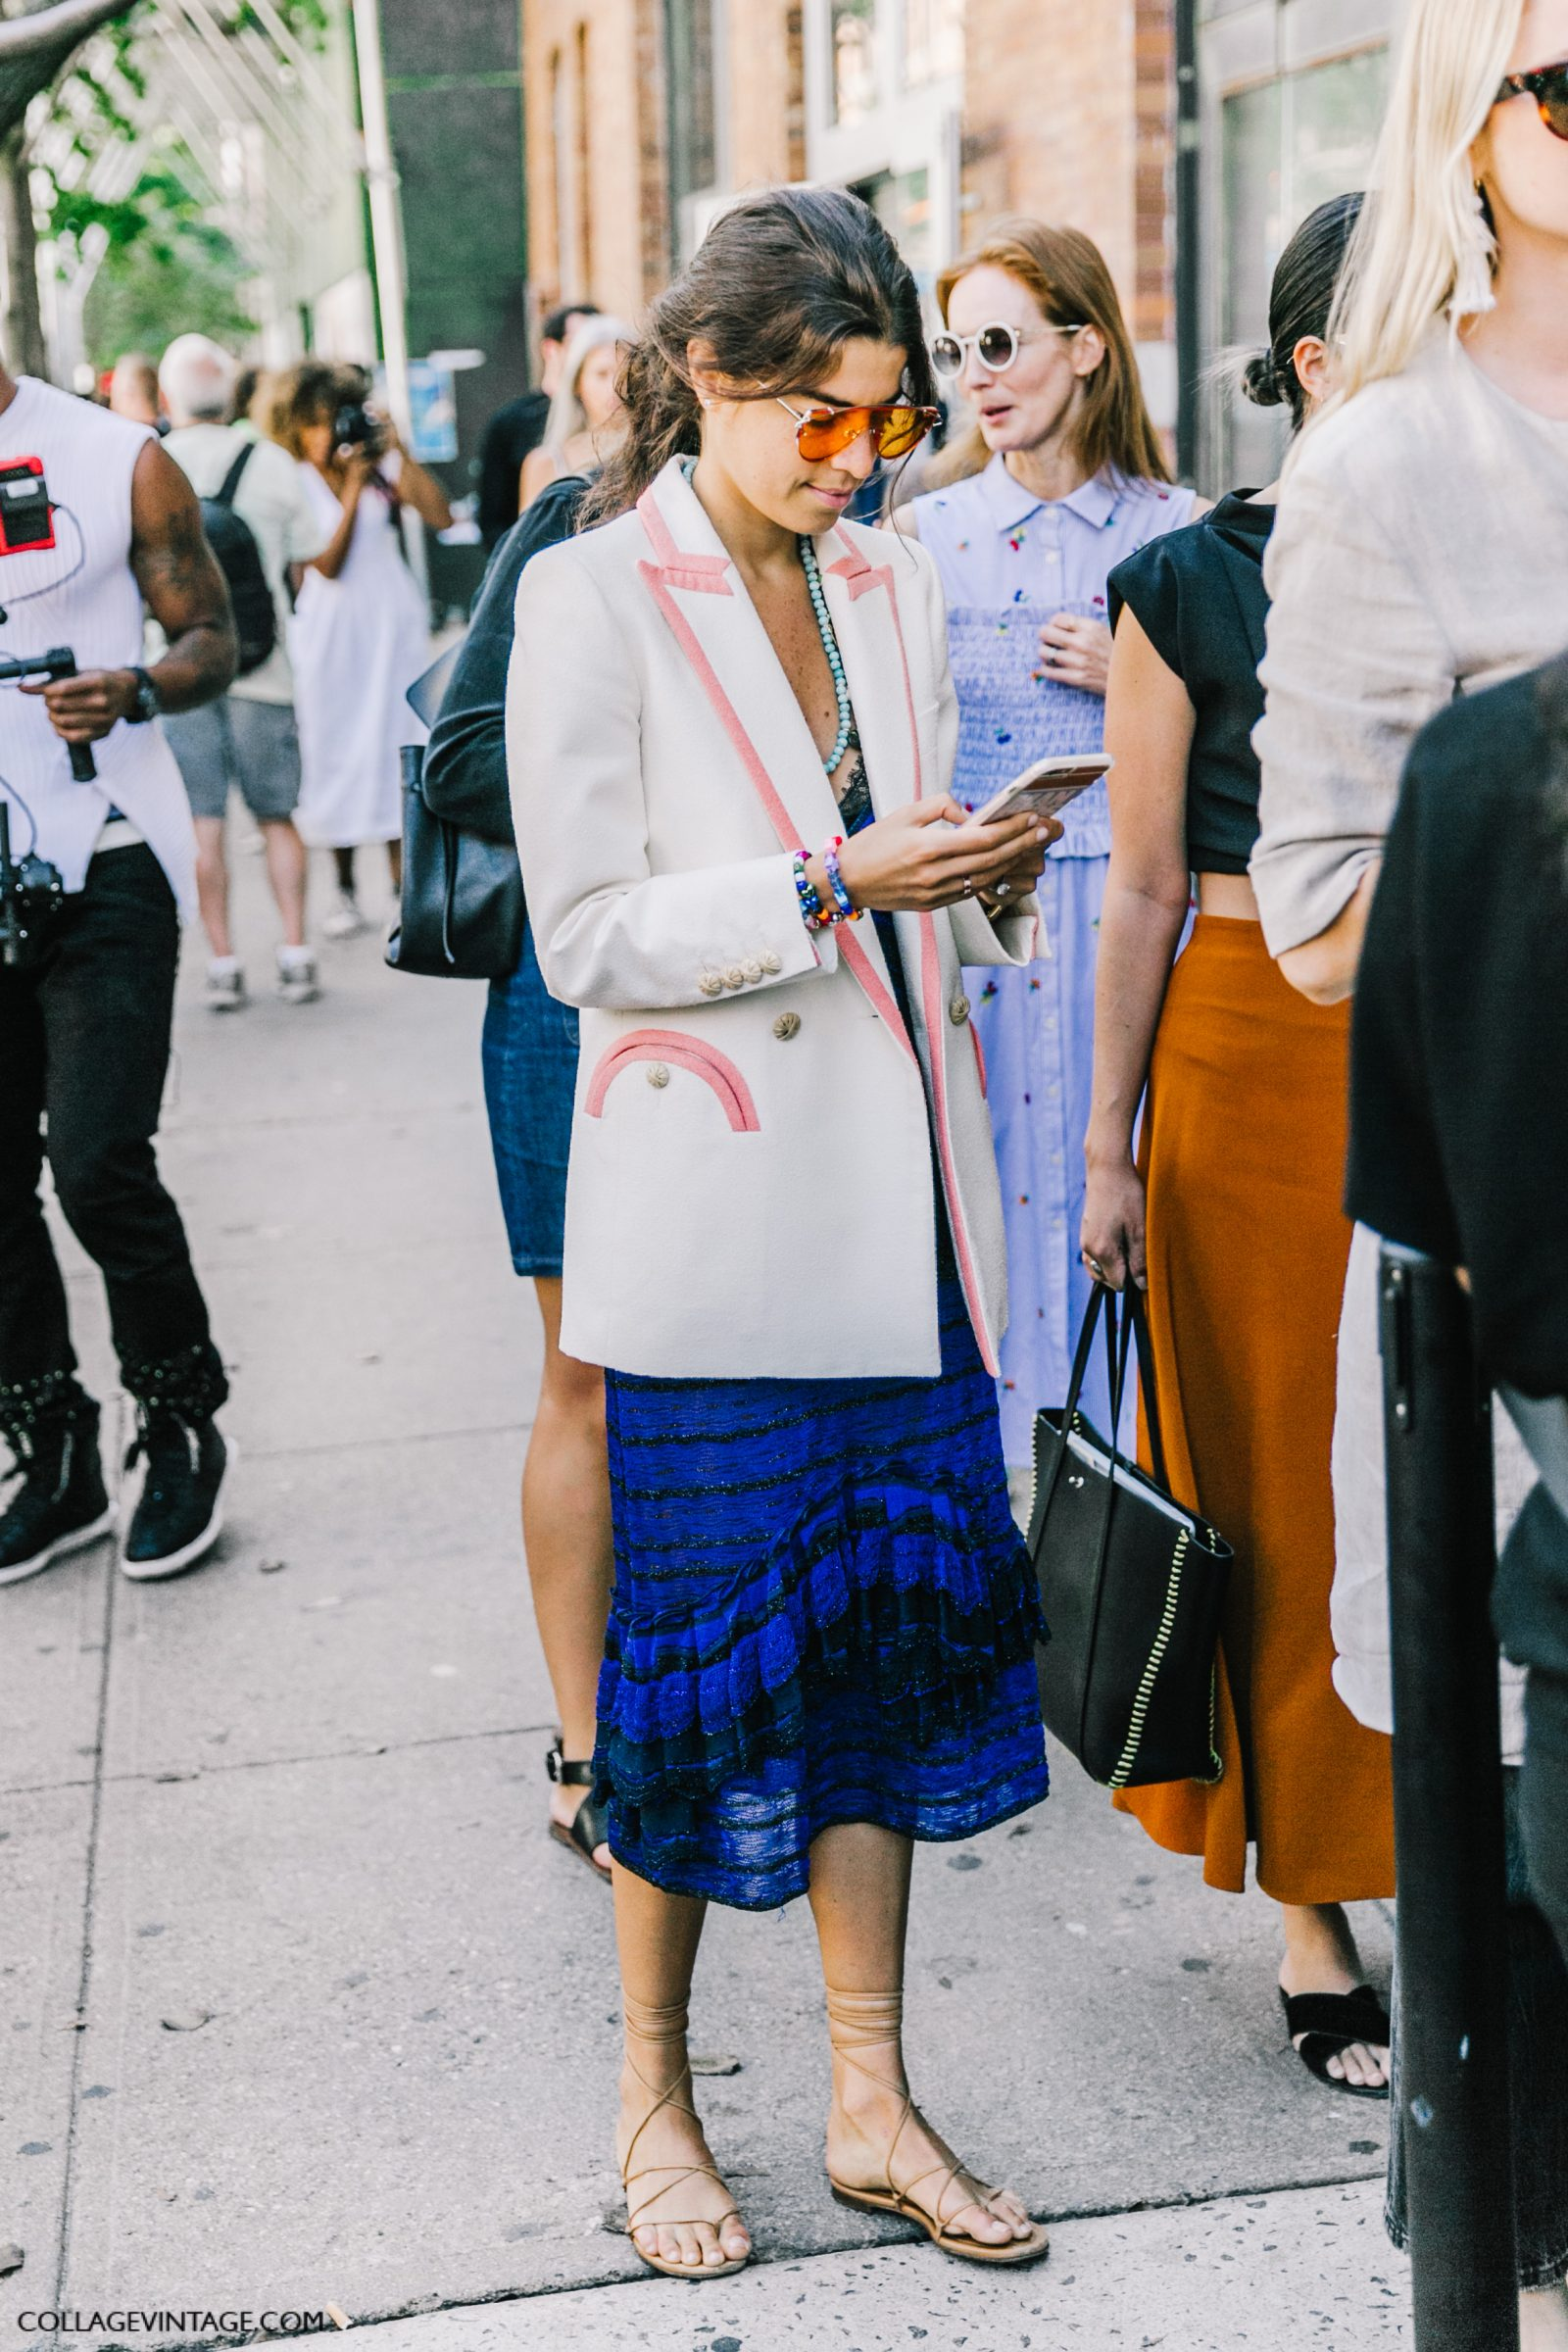 nyfw-new_york_fashion_week_ss17-street_style-outfits-collage_vintage-vintage-mansur_gavriel-rodarte-coach-55